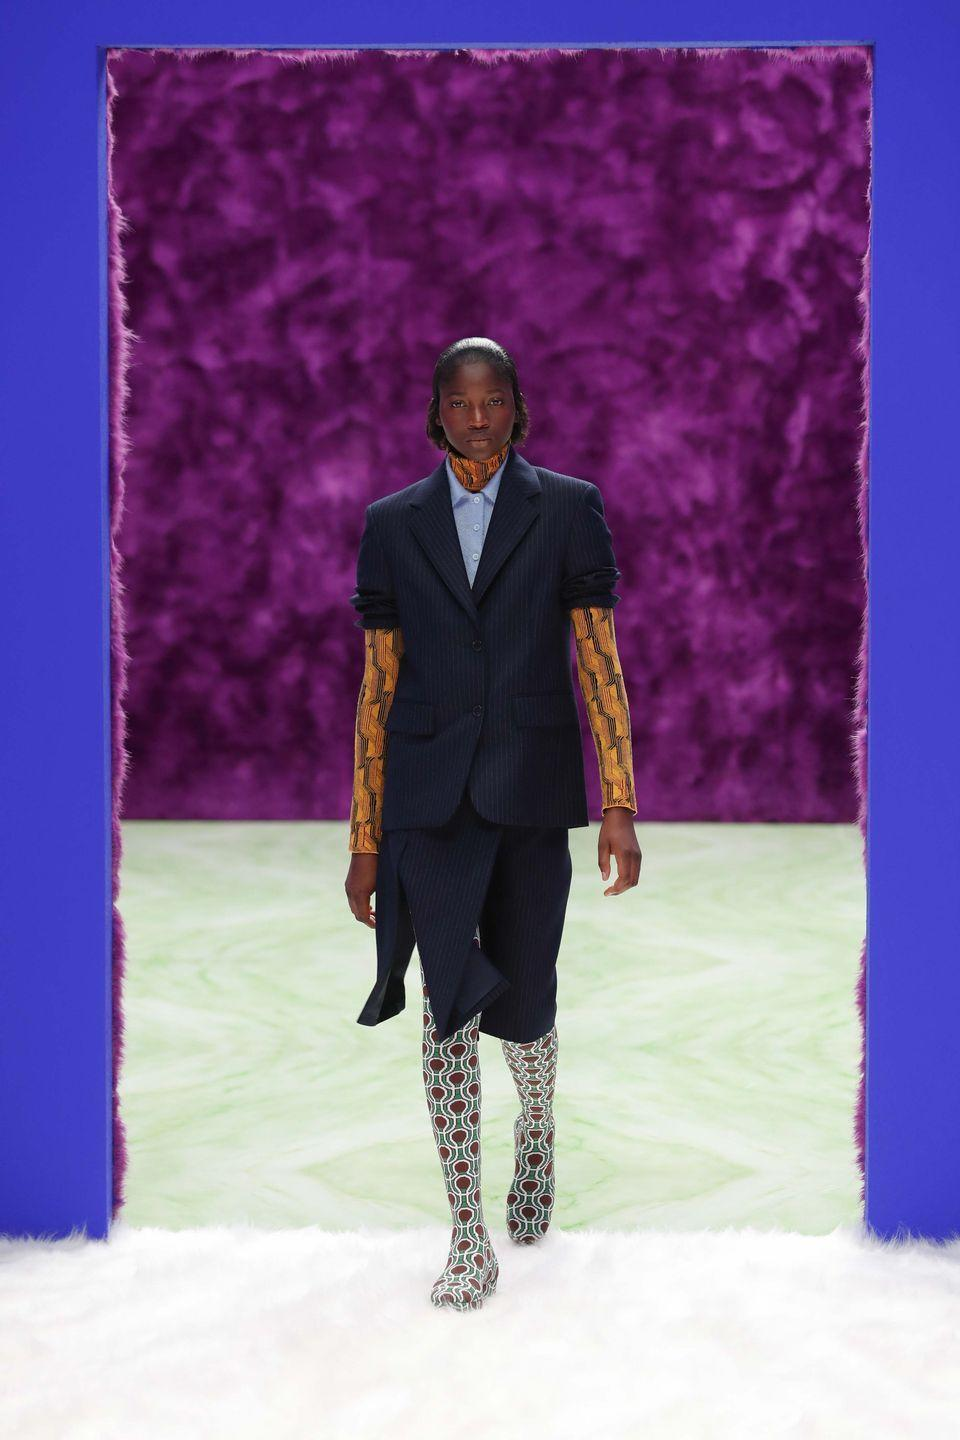 "<p>For Raf Simons and Miuccia Prada's latest collection, the duo decided to focus on change, transformation and opening possibilities.</p><p>""A fusion between disparate themes and intents mirrors the nature of humanity: a belief in the fact that men and women each hold the masculine and feminine within themselves. This collection explores the space that exists between conventional polar opposites – the point between simplicity and complexity, elegance and practicality, limitation and release, transmuted,"" they explained in the show notes.</p><p>This came through with designs that translated from one intent to another, for example with evening gowns in the form of utilitarian jumpsuits and tailored coats in the brightest of colours: ""Ornament can become functional, the pragmatic can become decorative.""</p><p><a href=""https://www.youtube.com/watch?v=yKw39s55vOM&feature=youtu.be"" rel=""nofollow noopener"" target=""_blank"" data-ylk=""slk:Watch the show and see the full collection here"" class=""link rapid-noclick-resp"">Watch the show and see the full collection here</a>.</p>"